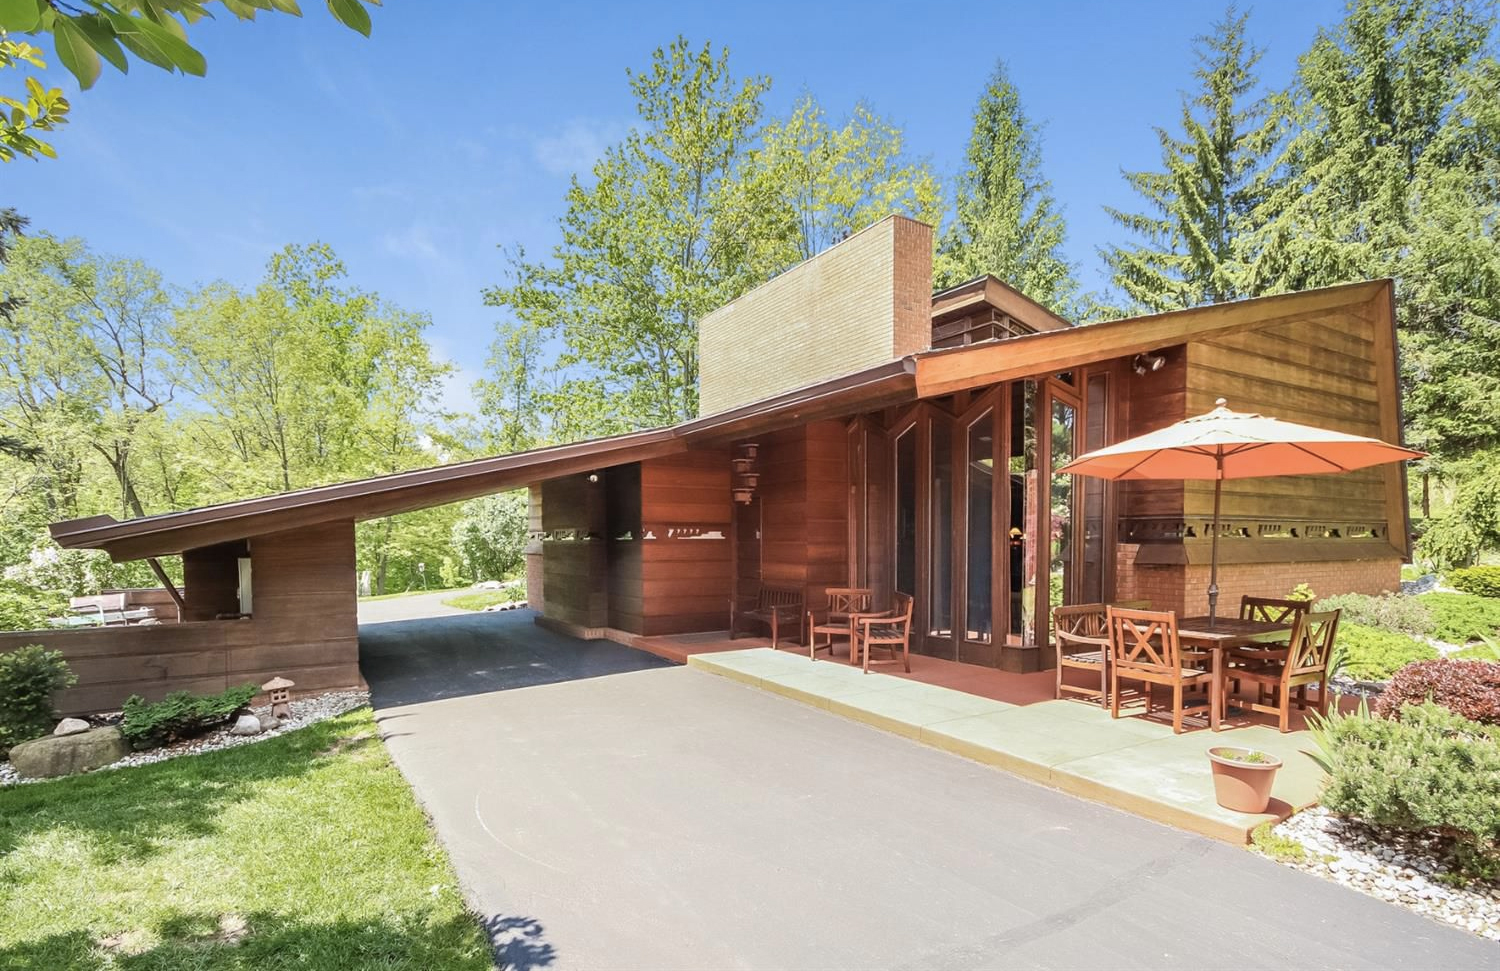 Lloyd Frank Wright Houses little known frank lloyd wright home in michigan lists for $1.2m